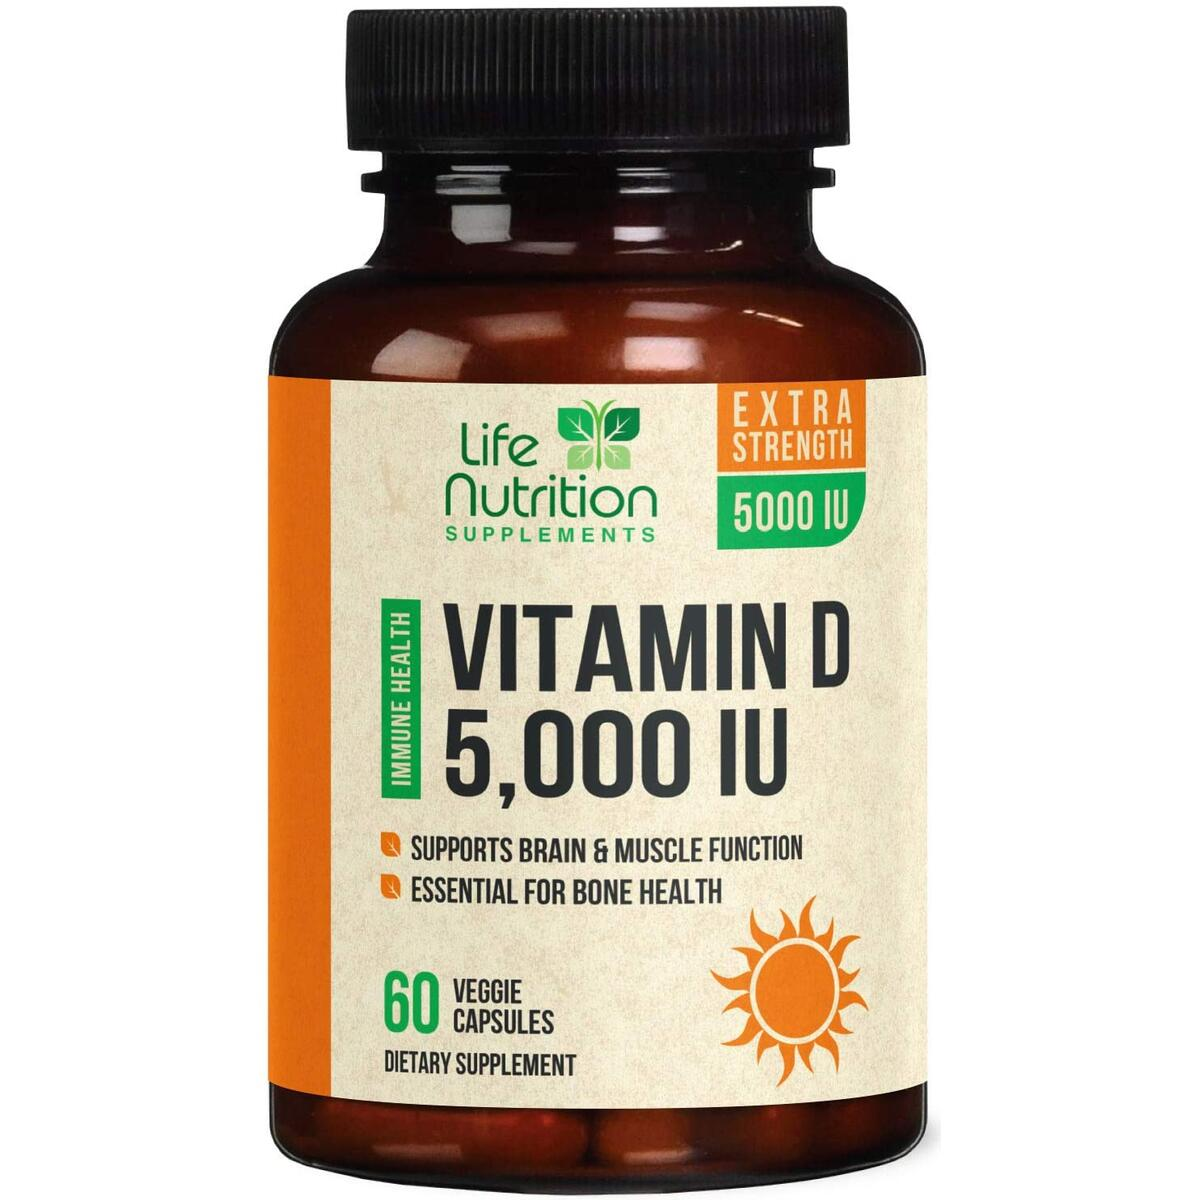 Vitamin D - Max Potency Vitamin D3 5000 IU / 125mcg, Made in USA, Bone Supplement Pills for Teeth, Heart & Immune Support for Men & Women - Non-GMO & Gluten Free - 60 Capsules